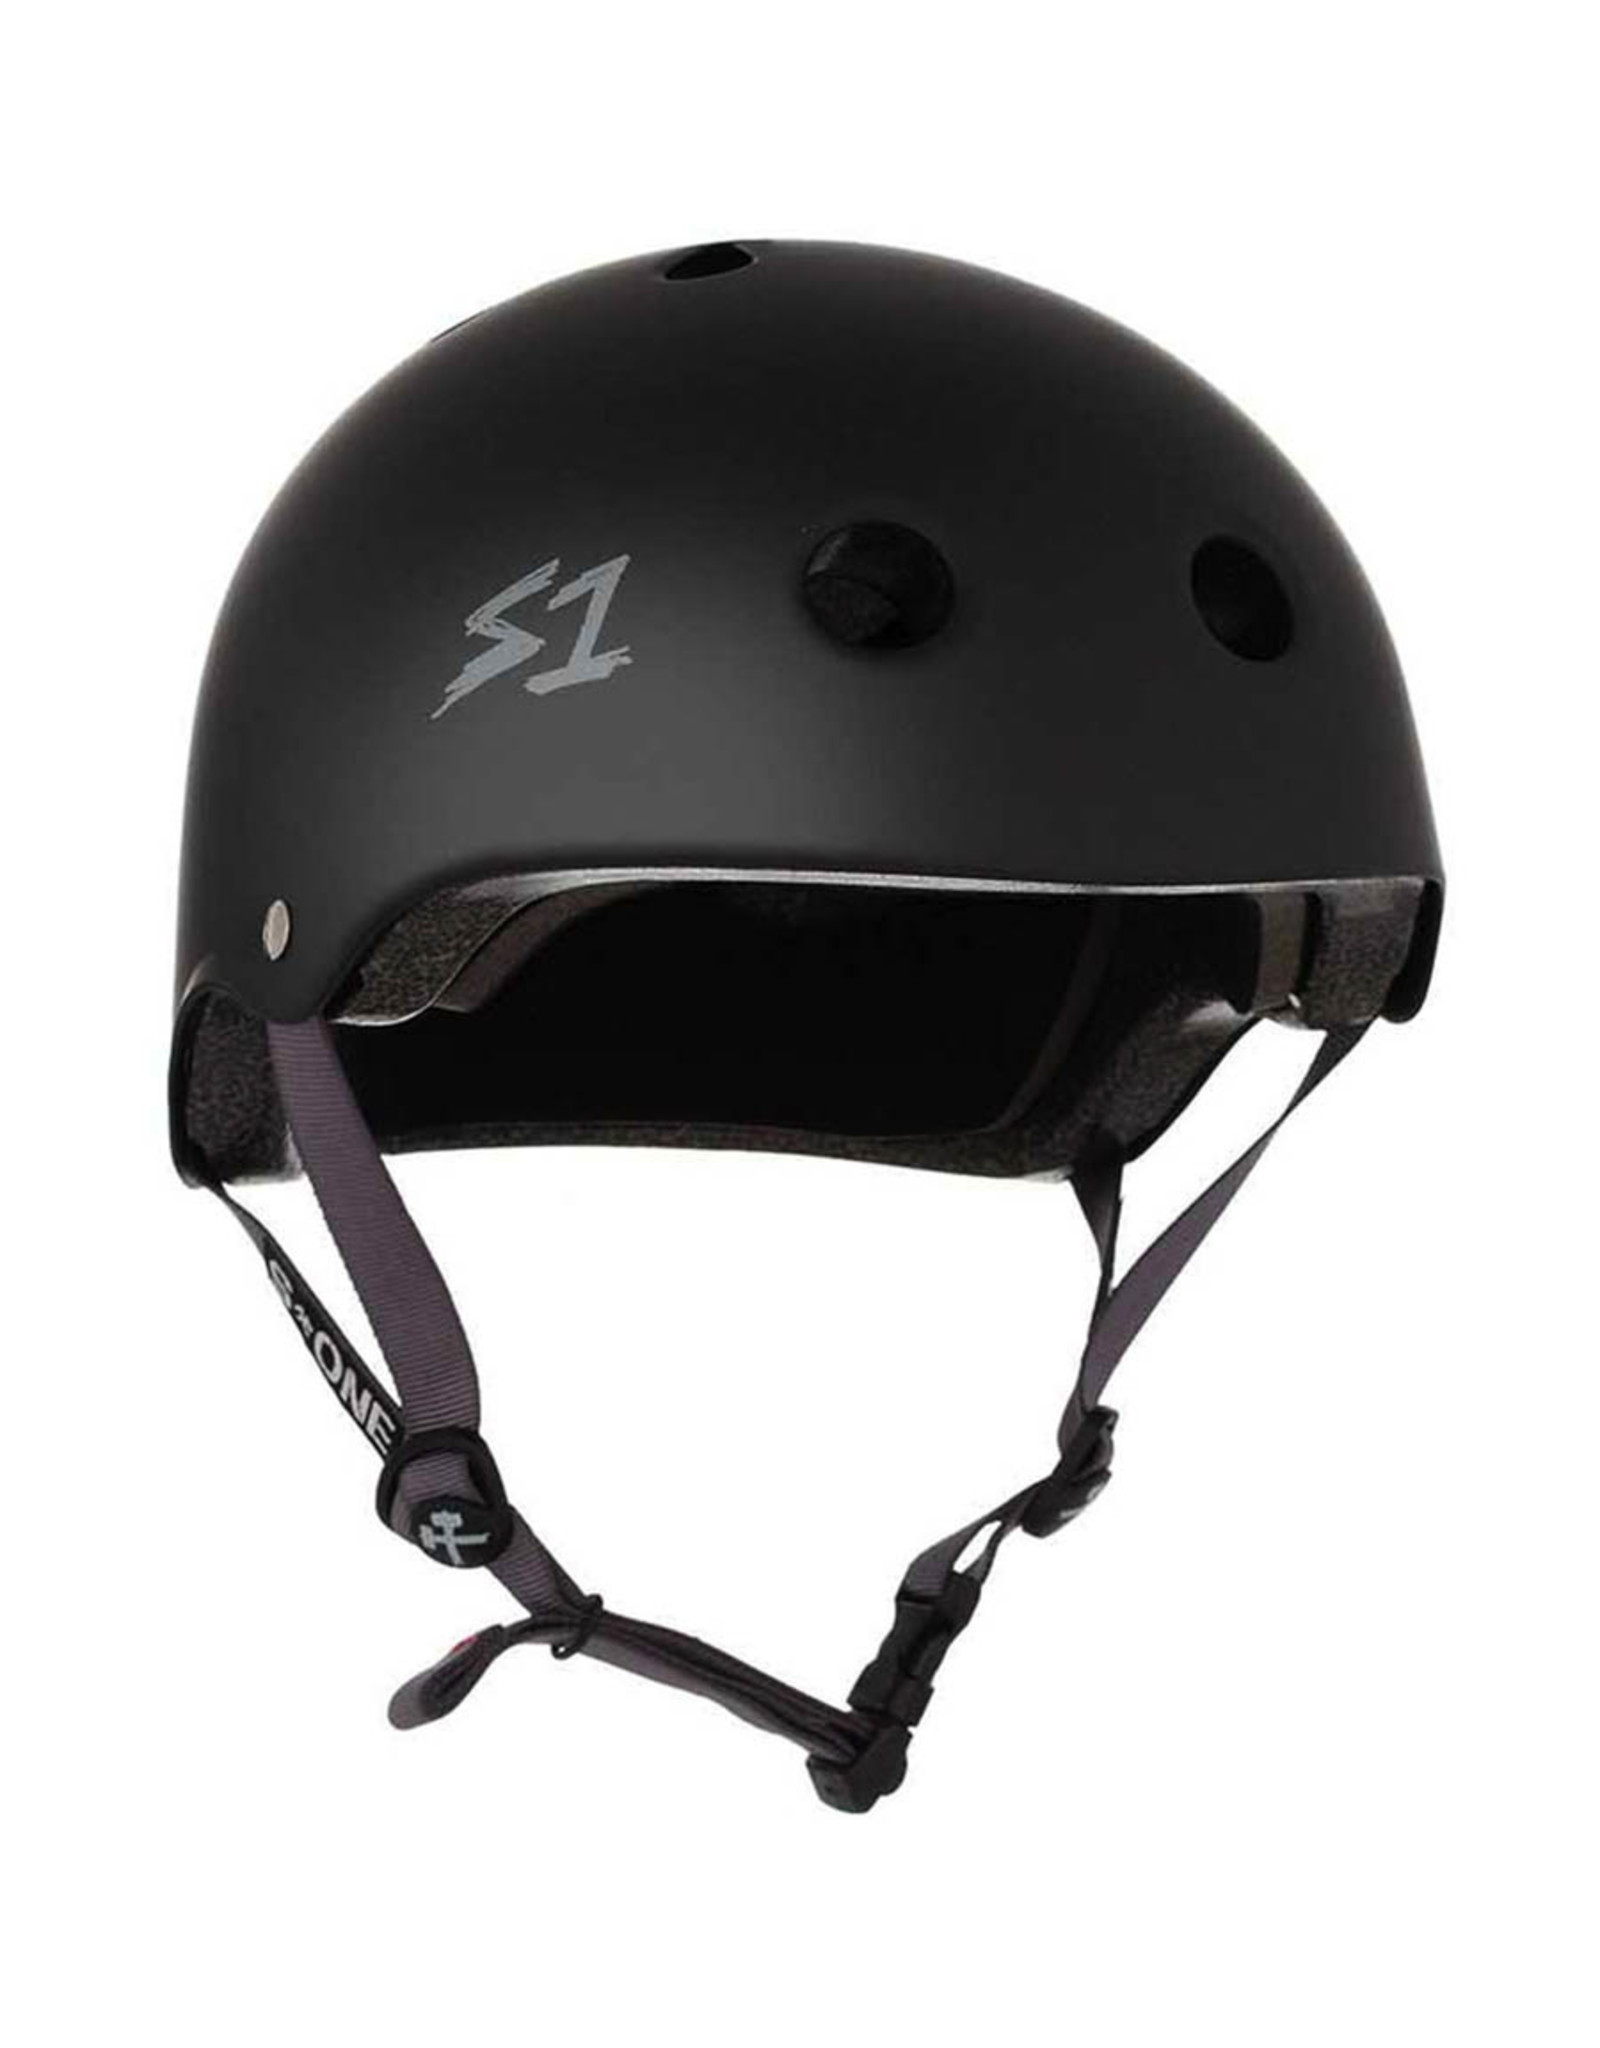 S-One S-One Helmet The Adult Lifer (Black Matte/Black Straps)